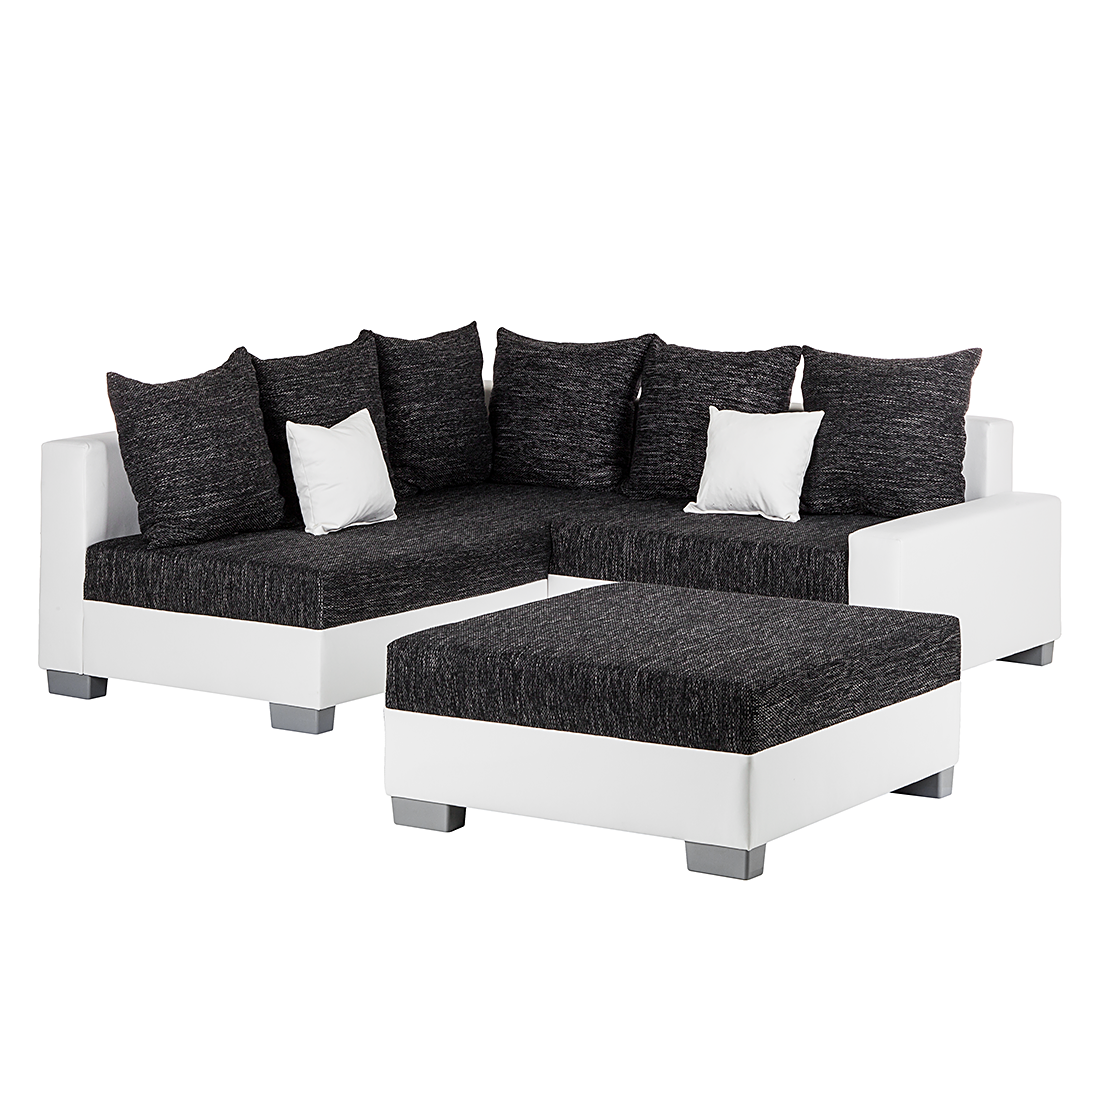 Ecksofa mit hocker schwarz wei ottomane links eckcouch for Eckcouch links